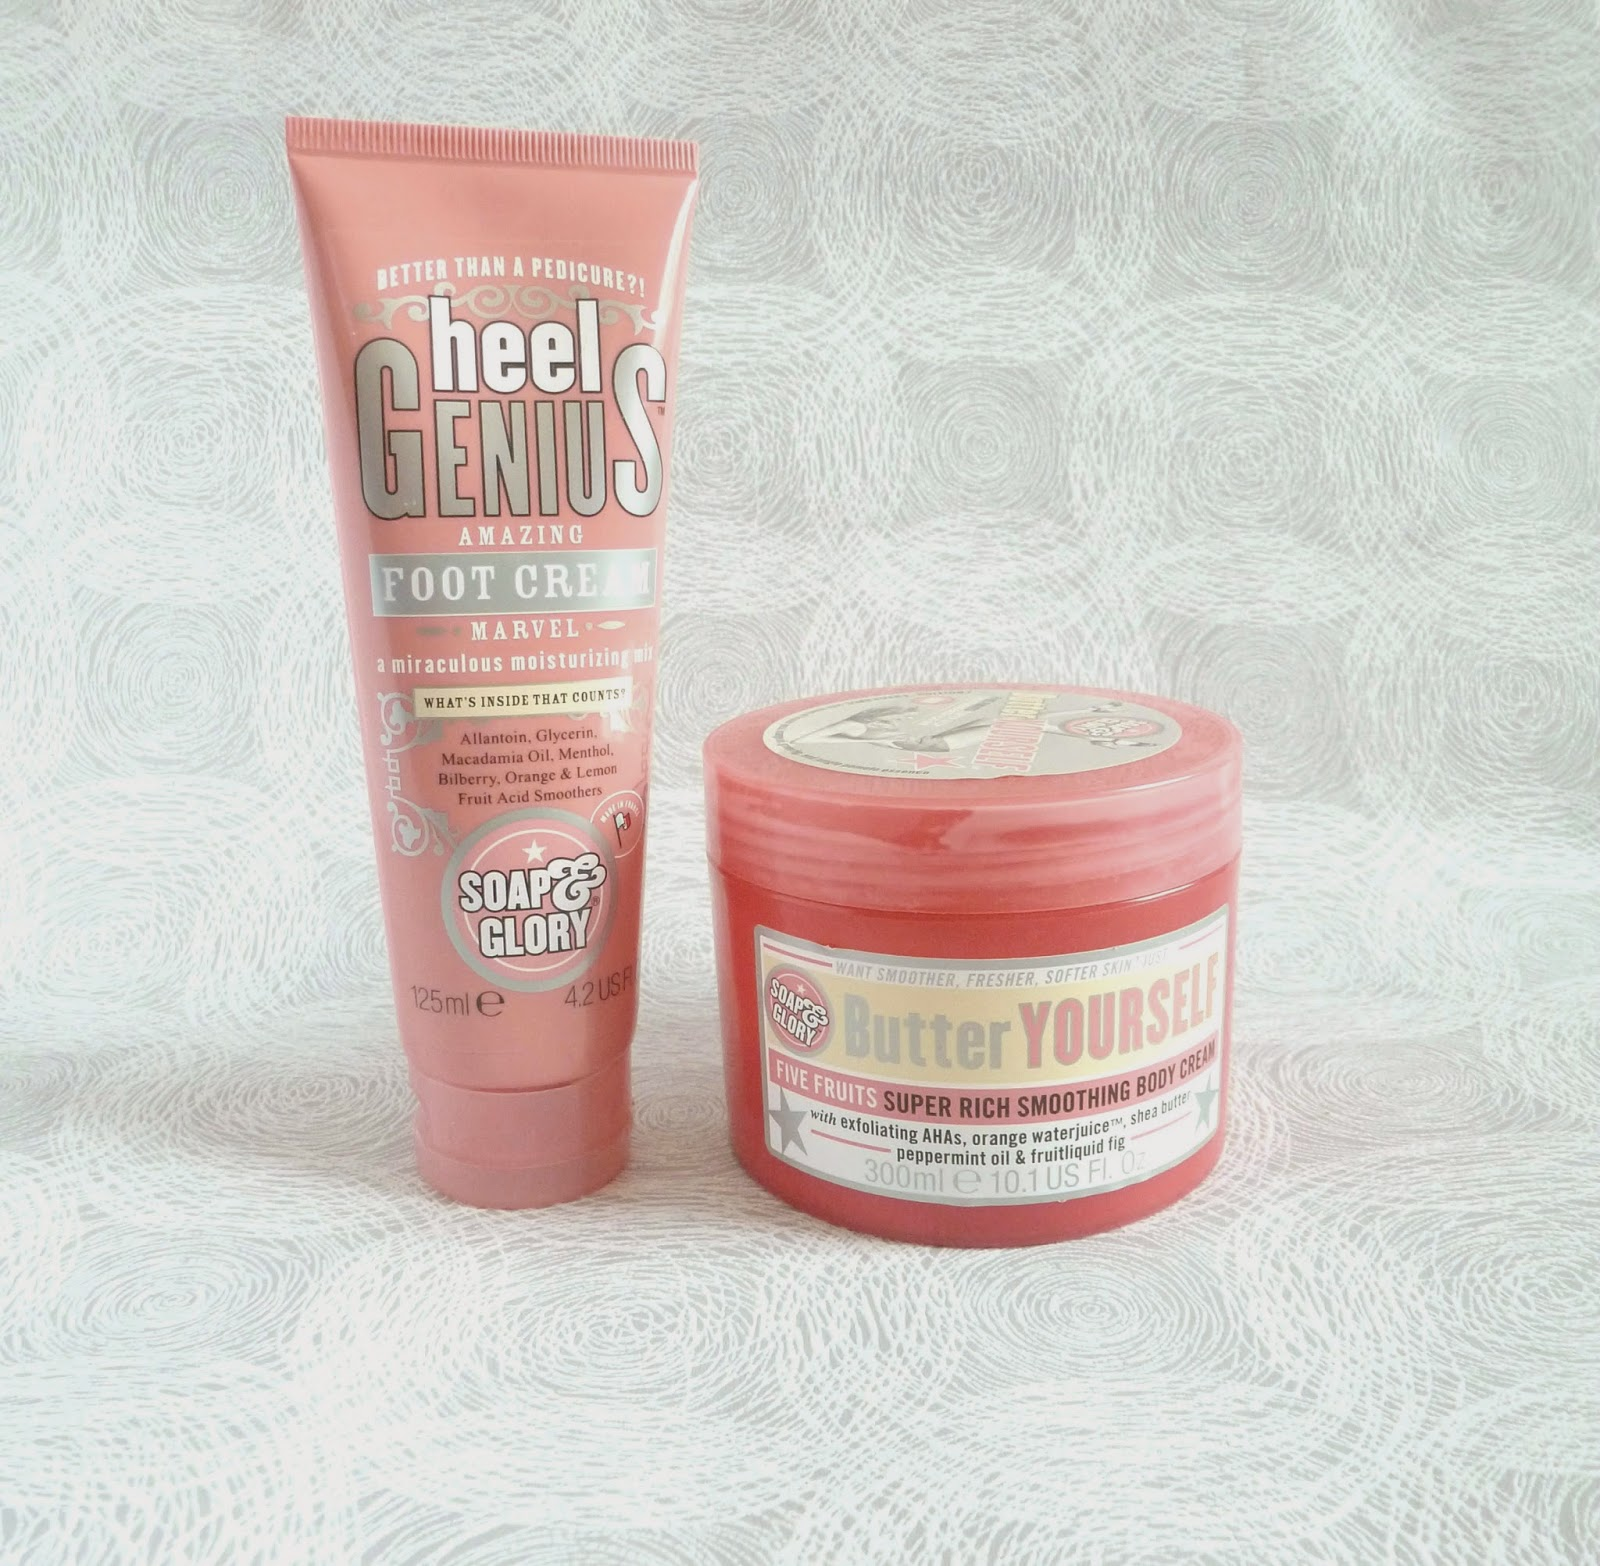 Soap&glory products - heel genius foot cream and butter yourself body cream